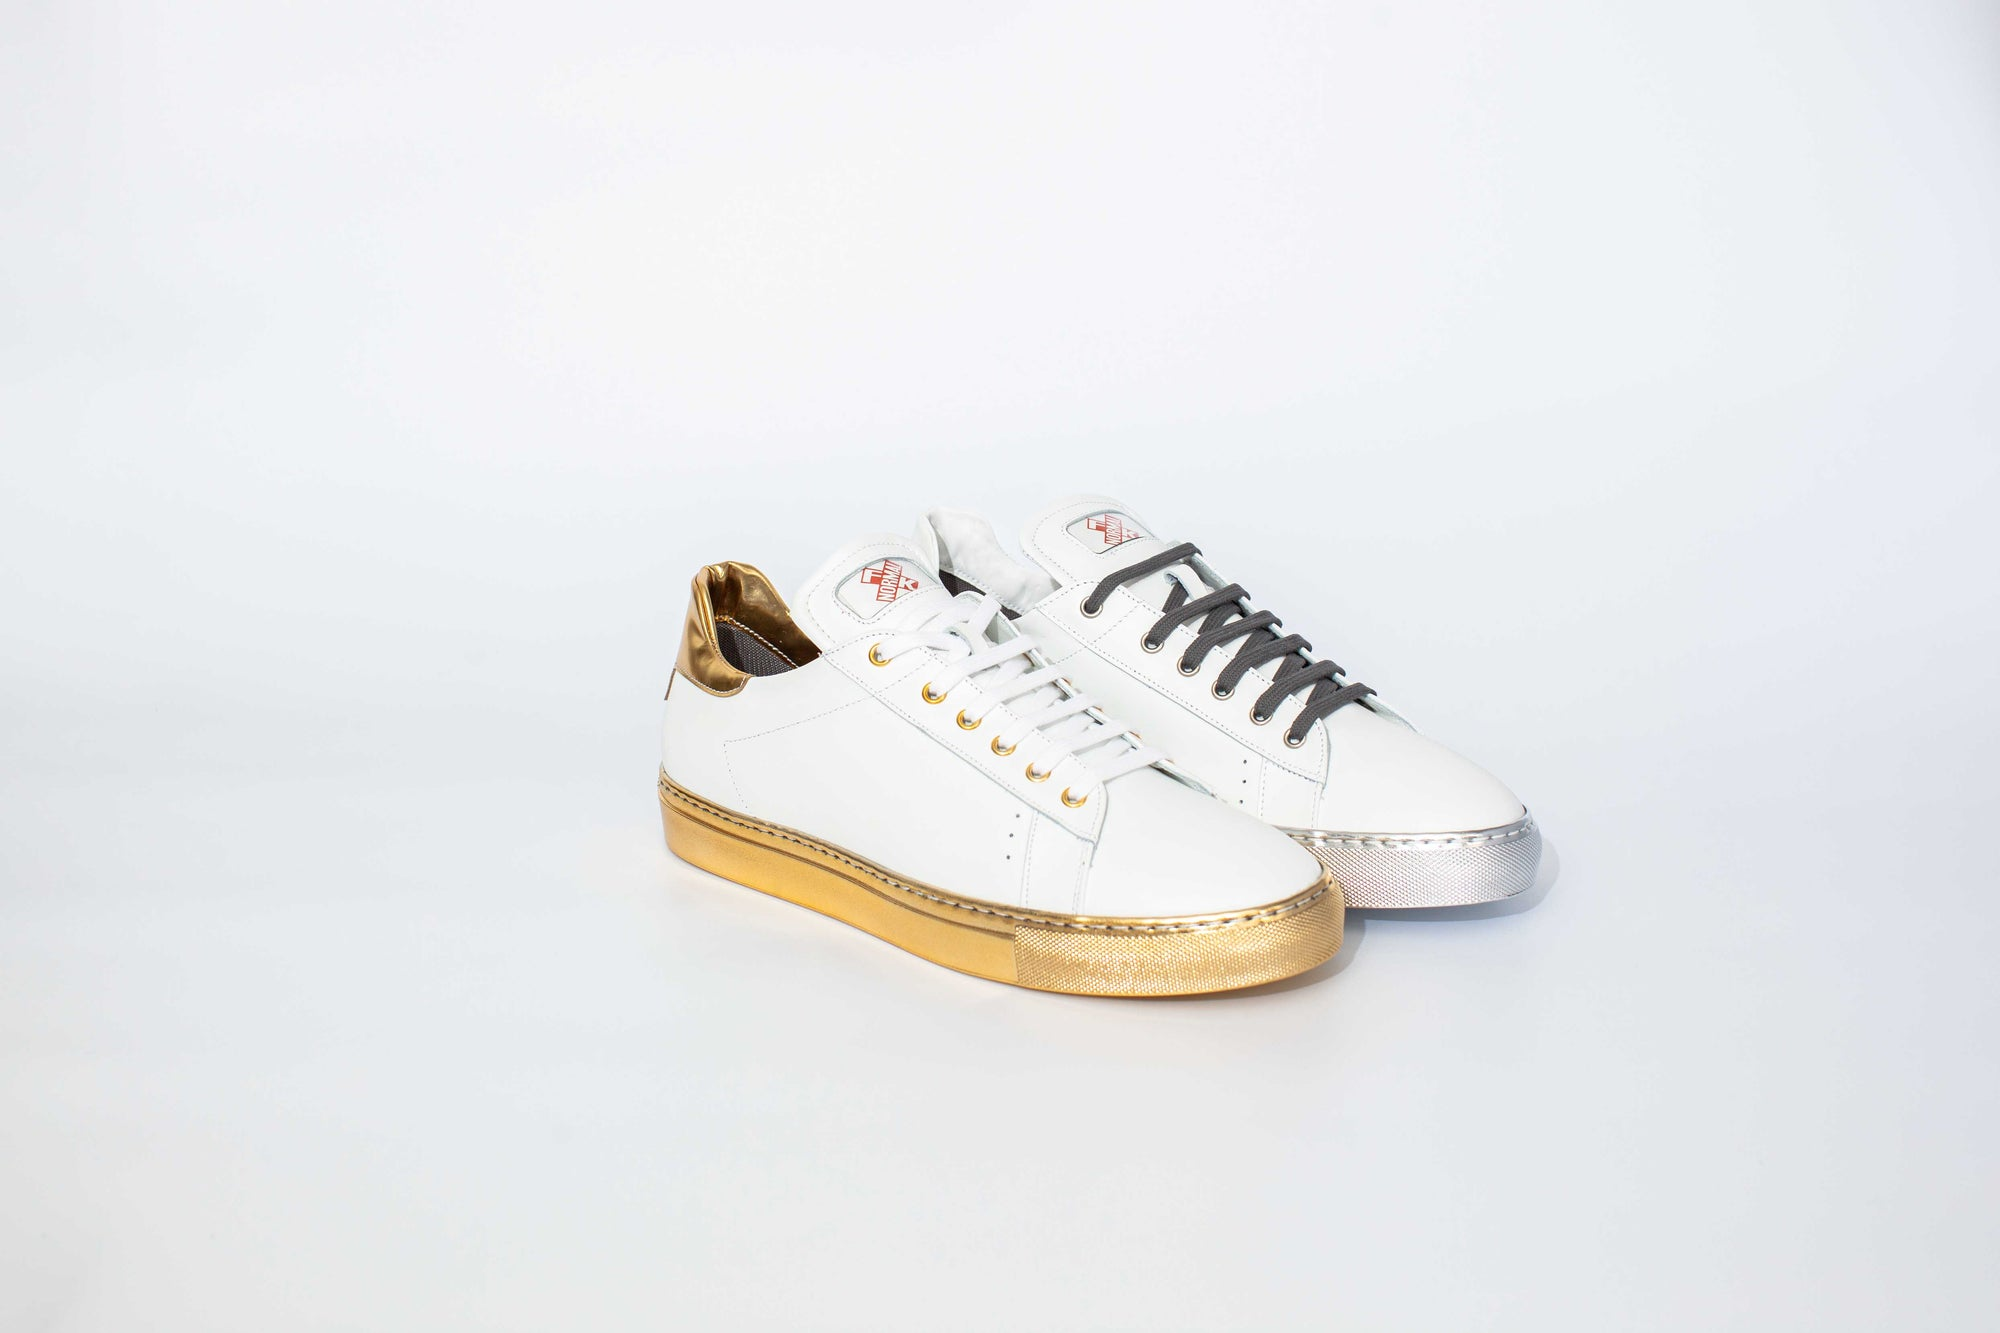 FK NORMAL GOLD AND SILVER TENNIS TRAINERS